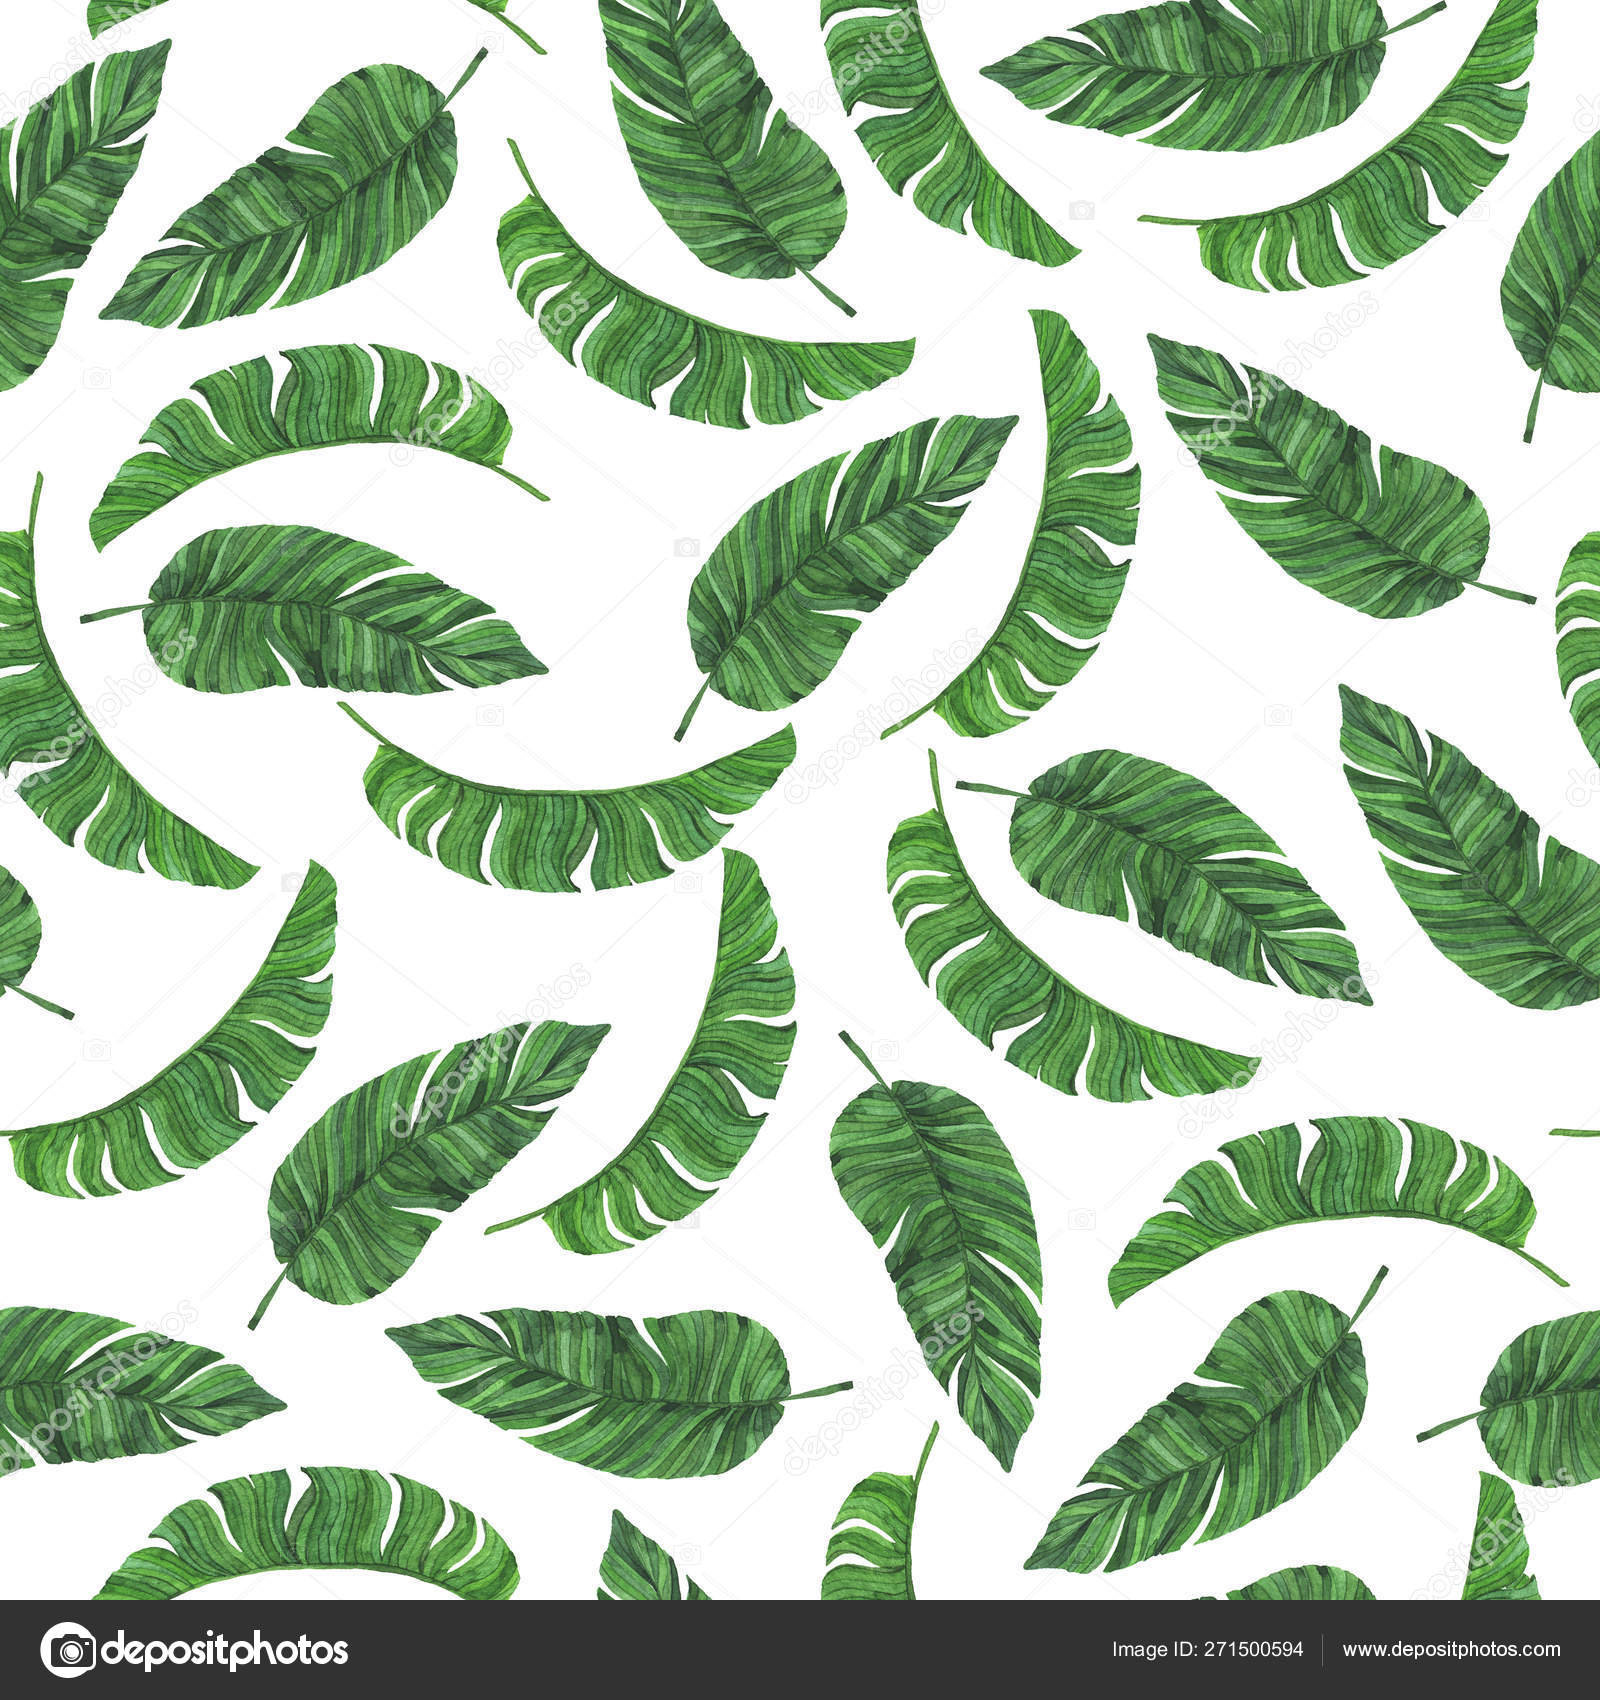 Áˆ Tropical Leaves Wallpaper Stock Photography Royalty Free Tropical Leaves Photos Download On Depositphotos Find high quality tropical leaves clipart, all png clipart images with transparent backgroud can be download for free! ᐈ tropical leaves wallpaper stock photography royalty free tropical leaves photos download on depositphotos